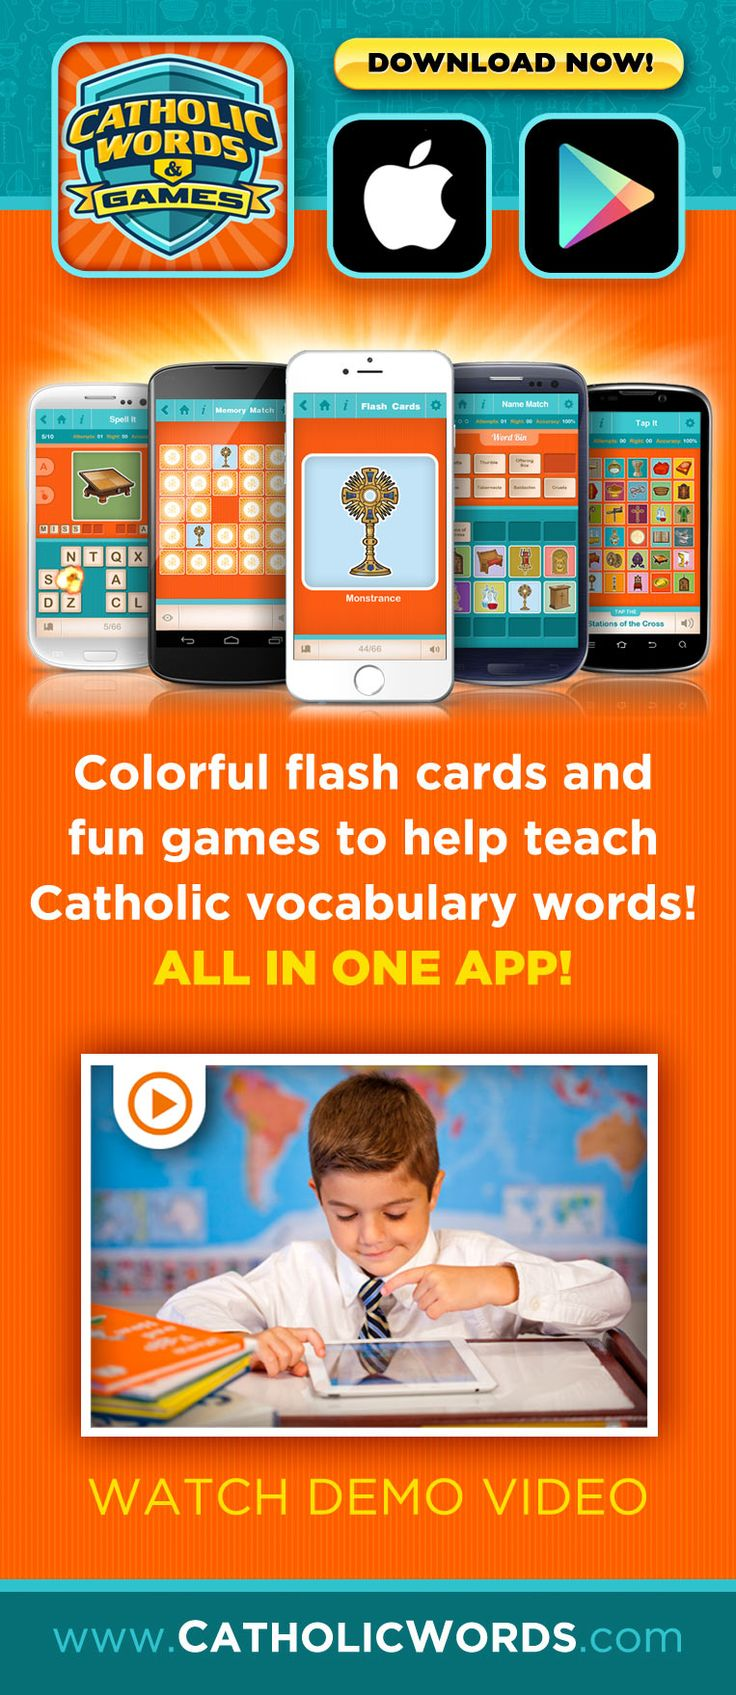 A fun app to teach Catholic